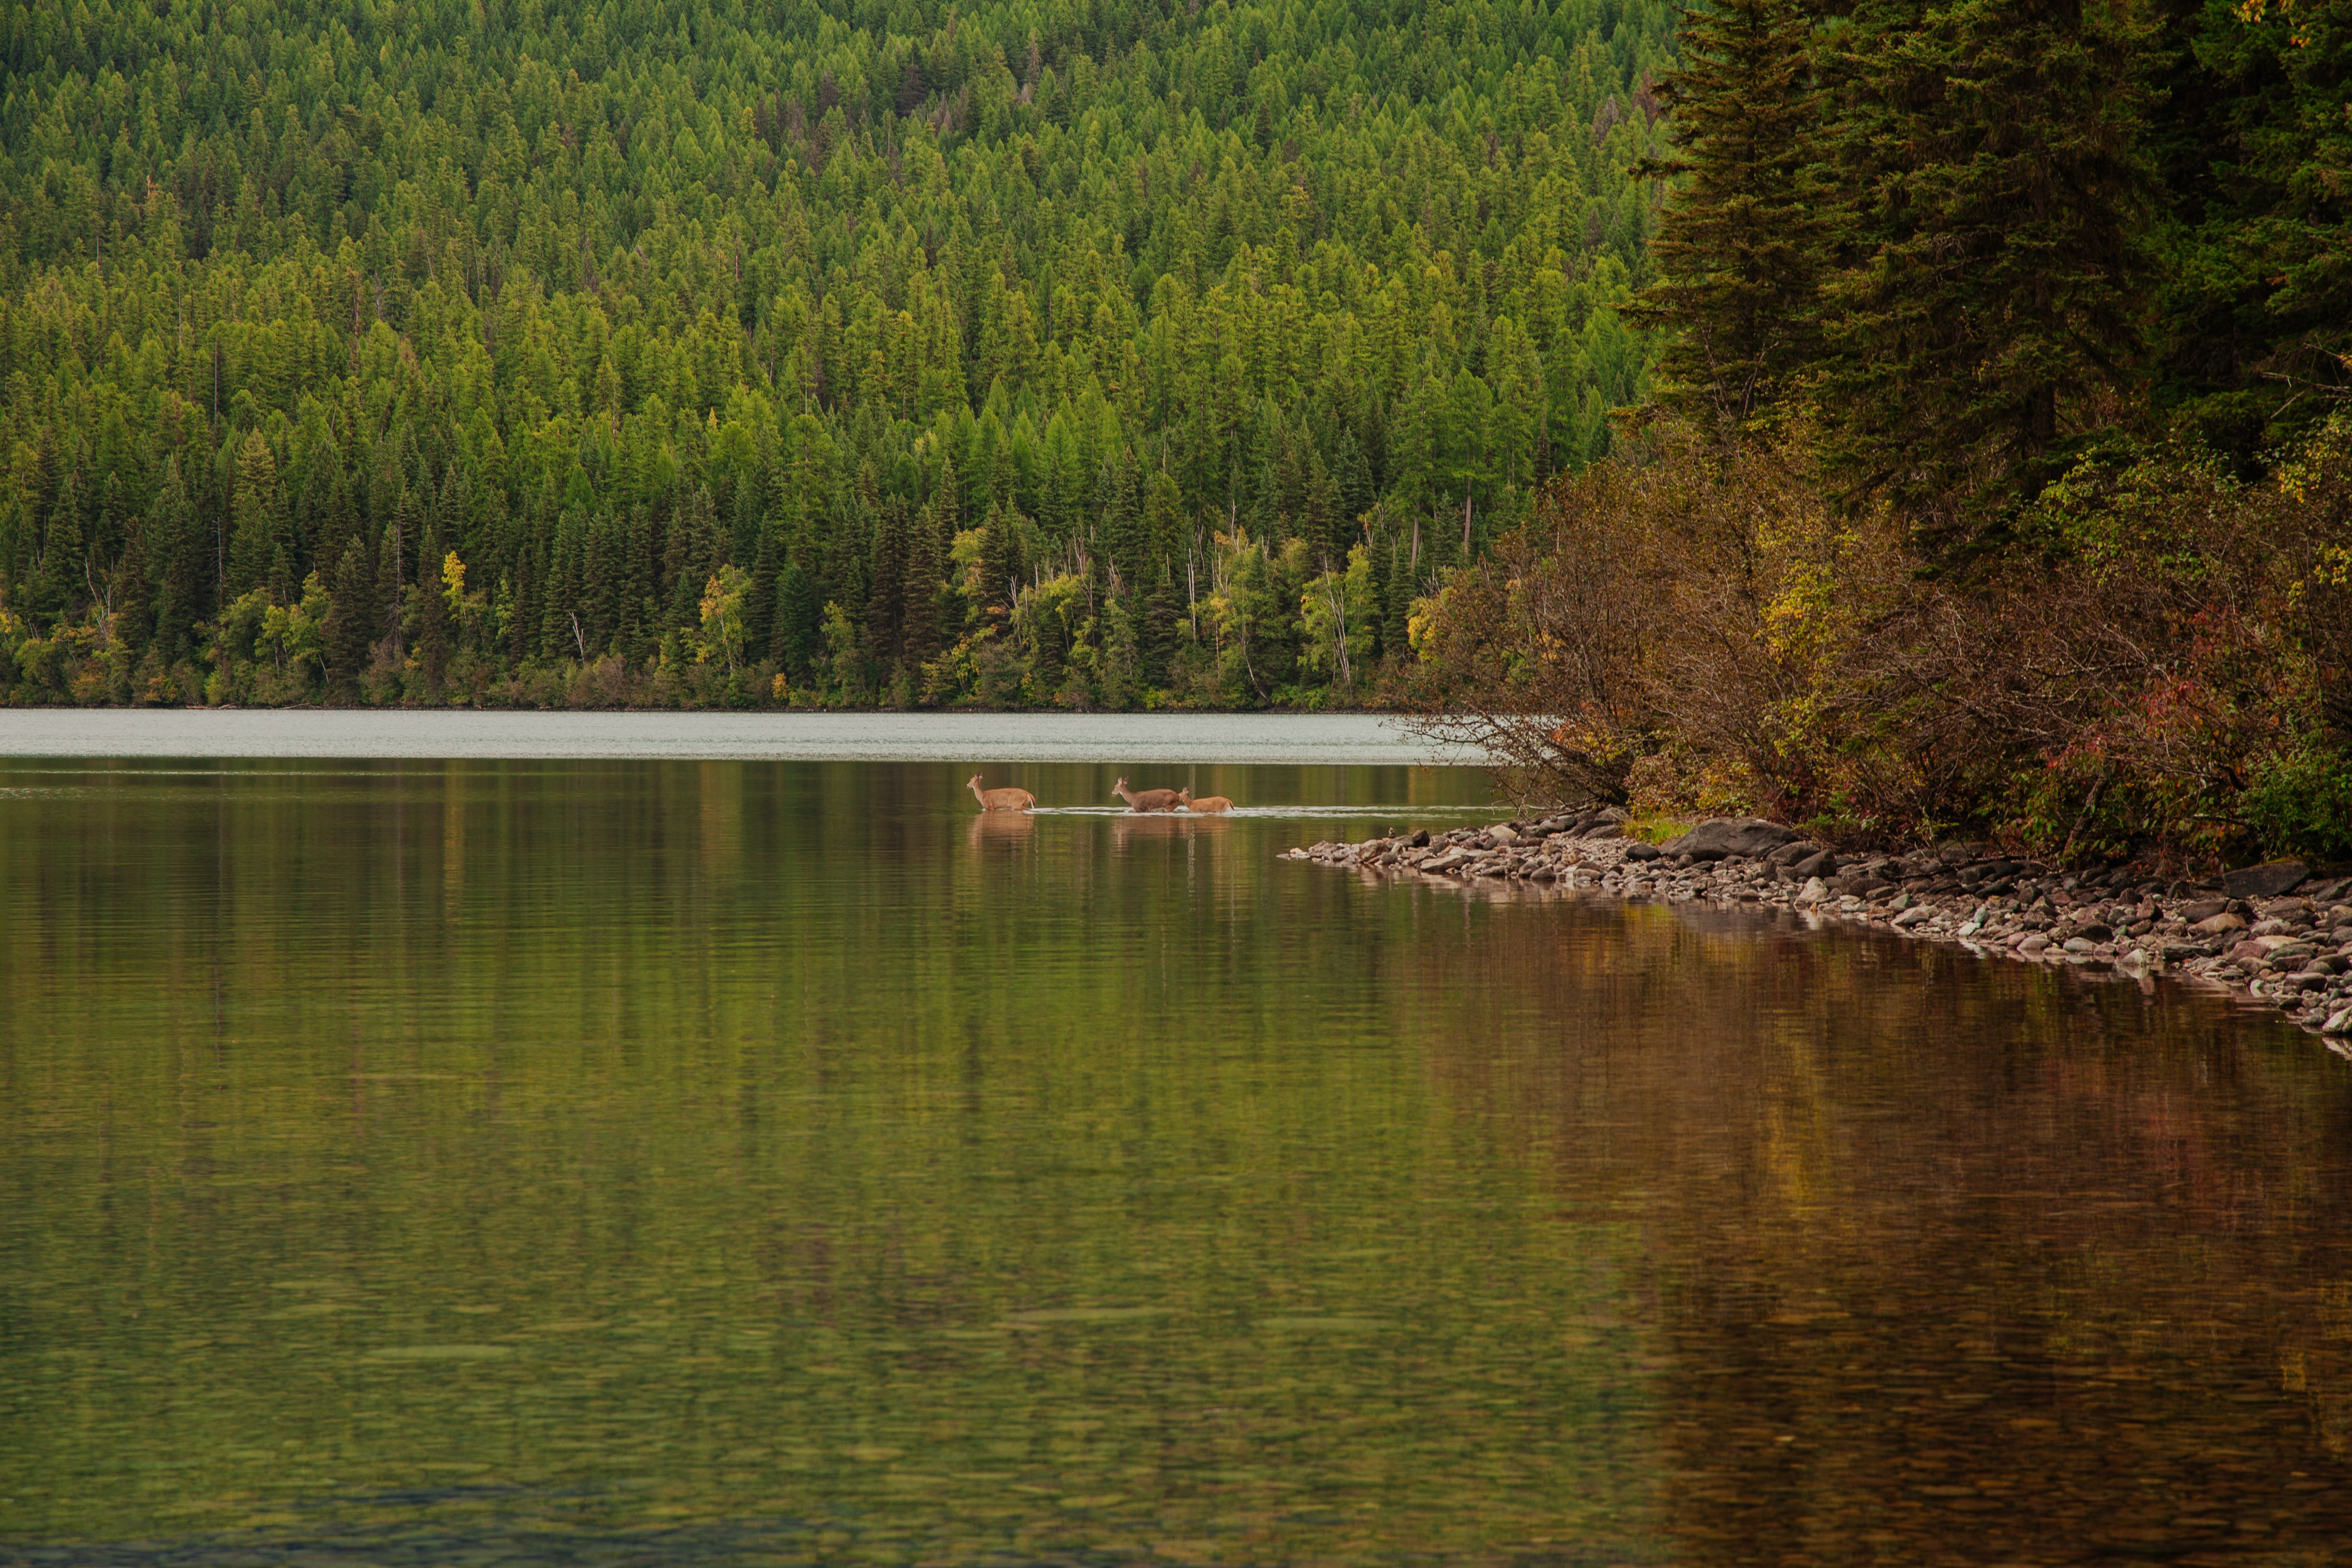 Three deers wading in a lake in Glacier National Park